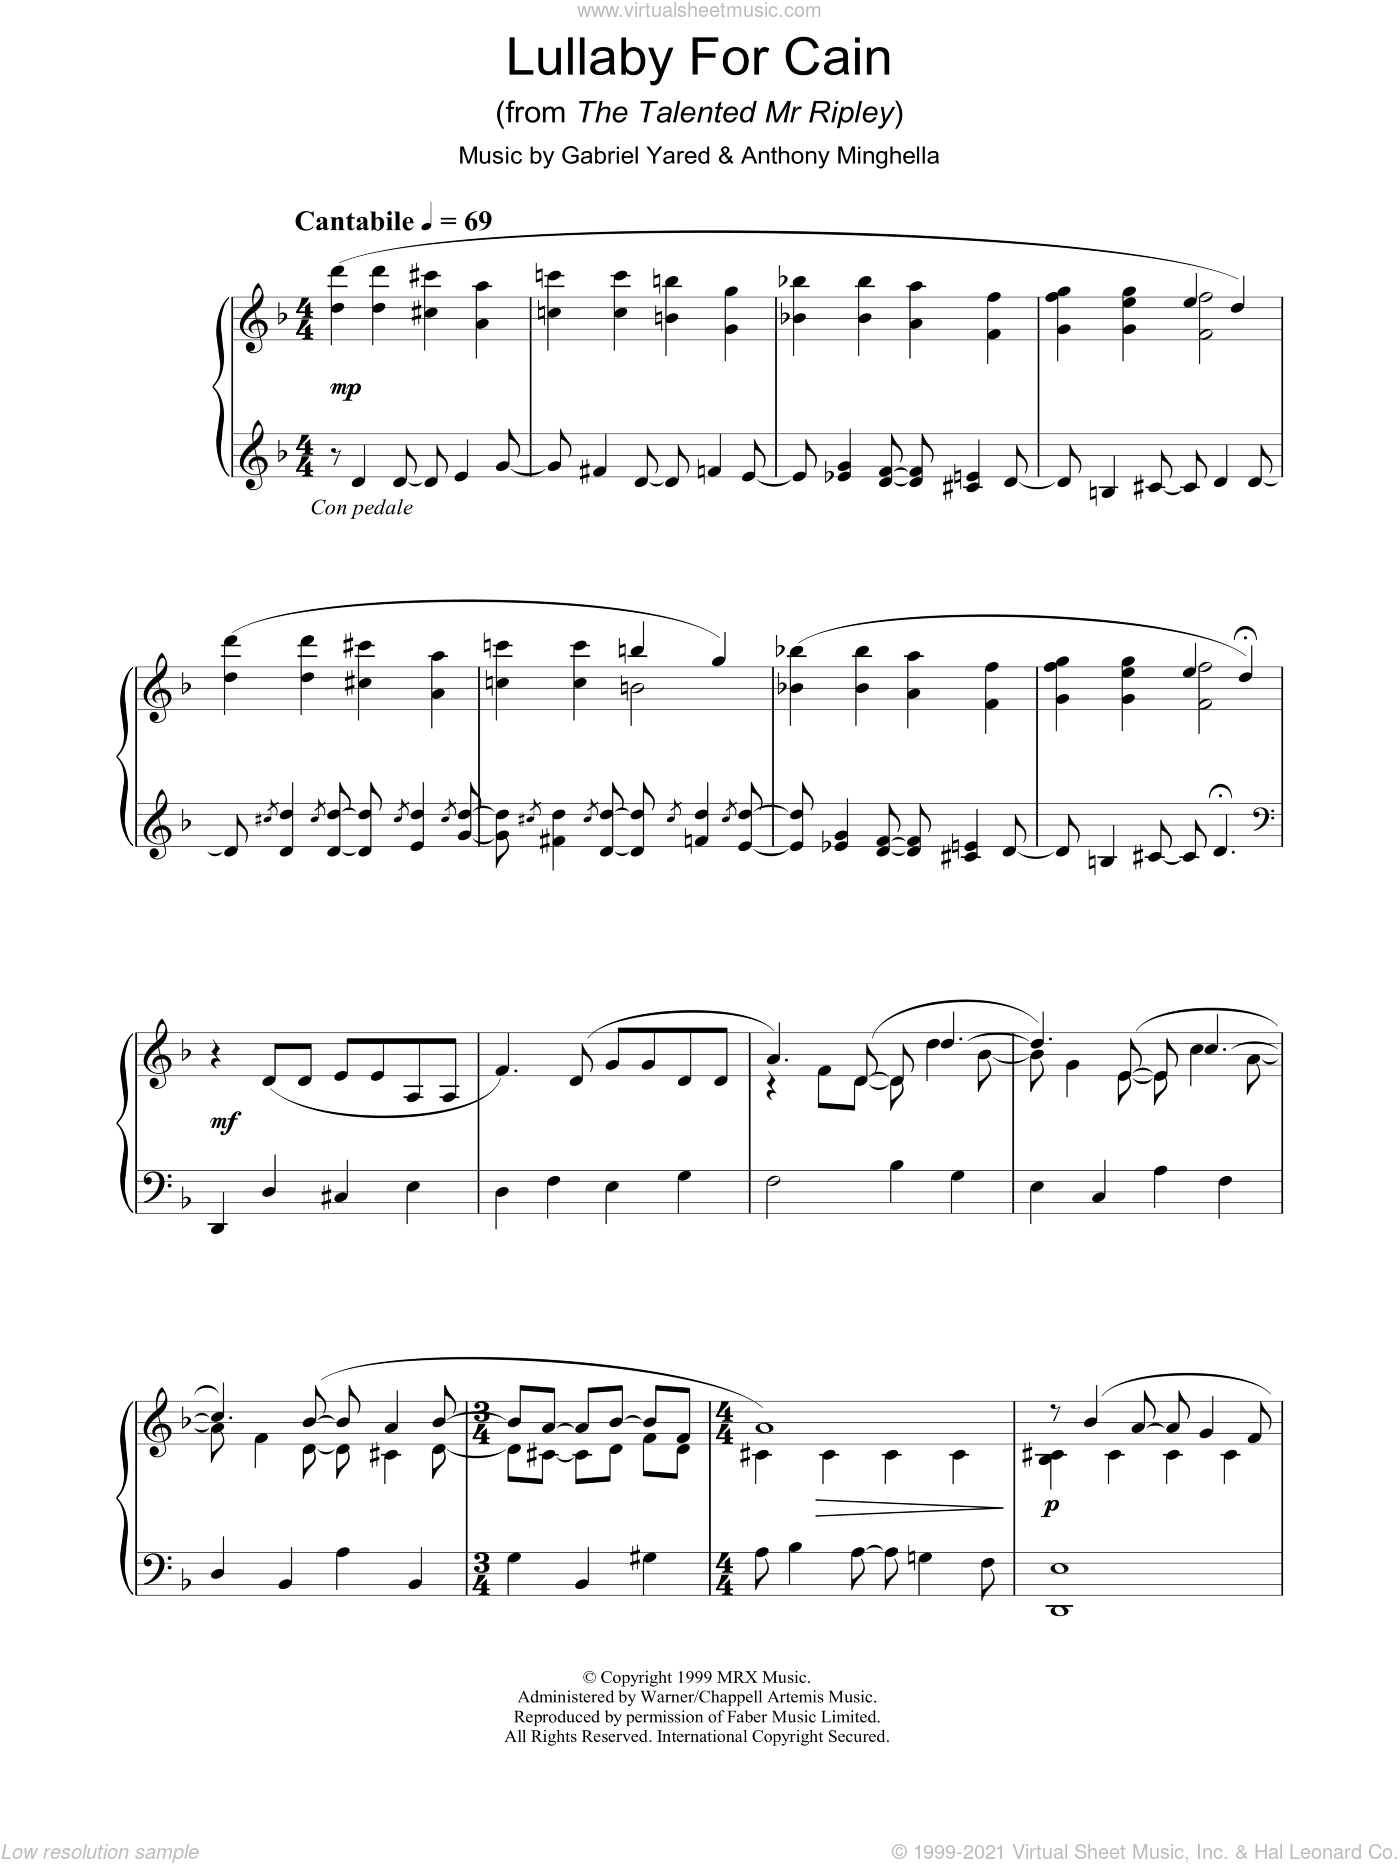 Lullaby For Cain sheet music for piano solo by Gabriel Yared and Anthony Minghella (arr.), intermediate skill level